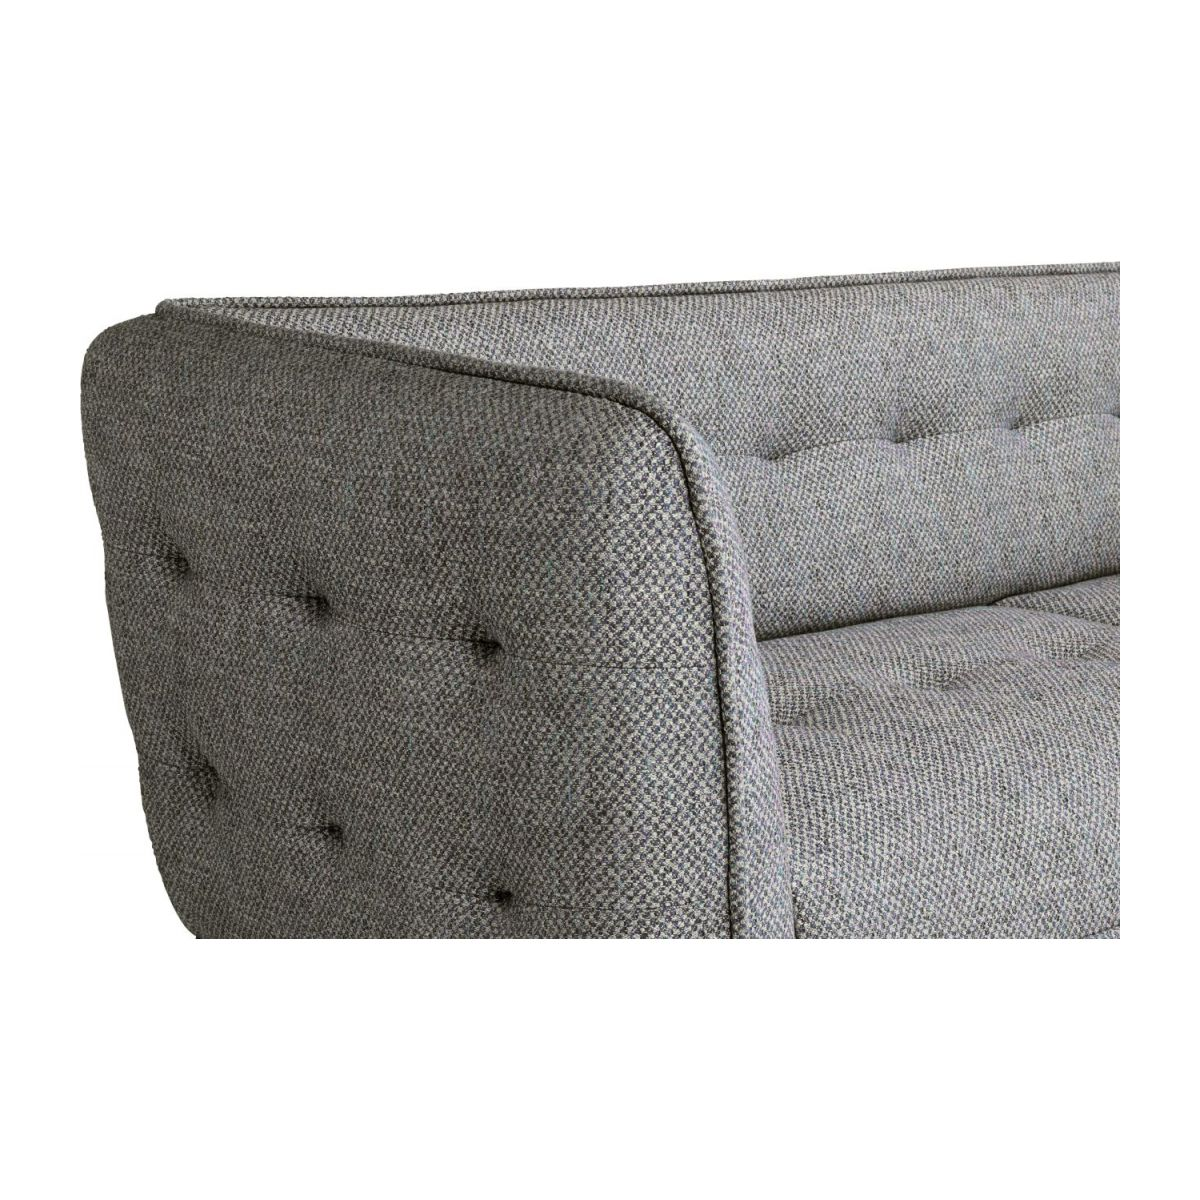 3 seater sofa in Bellagio fabric, night black and oak legs n°6